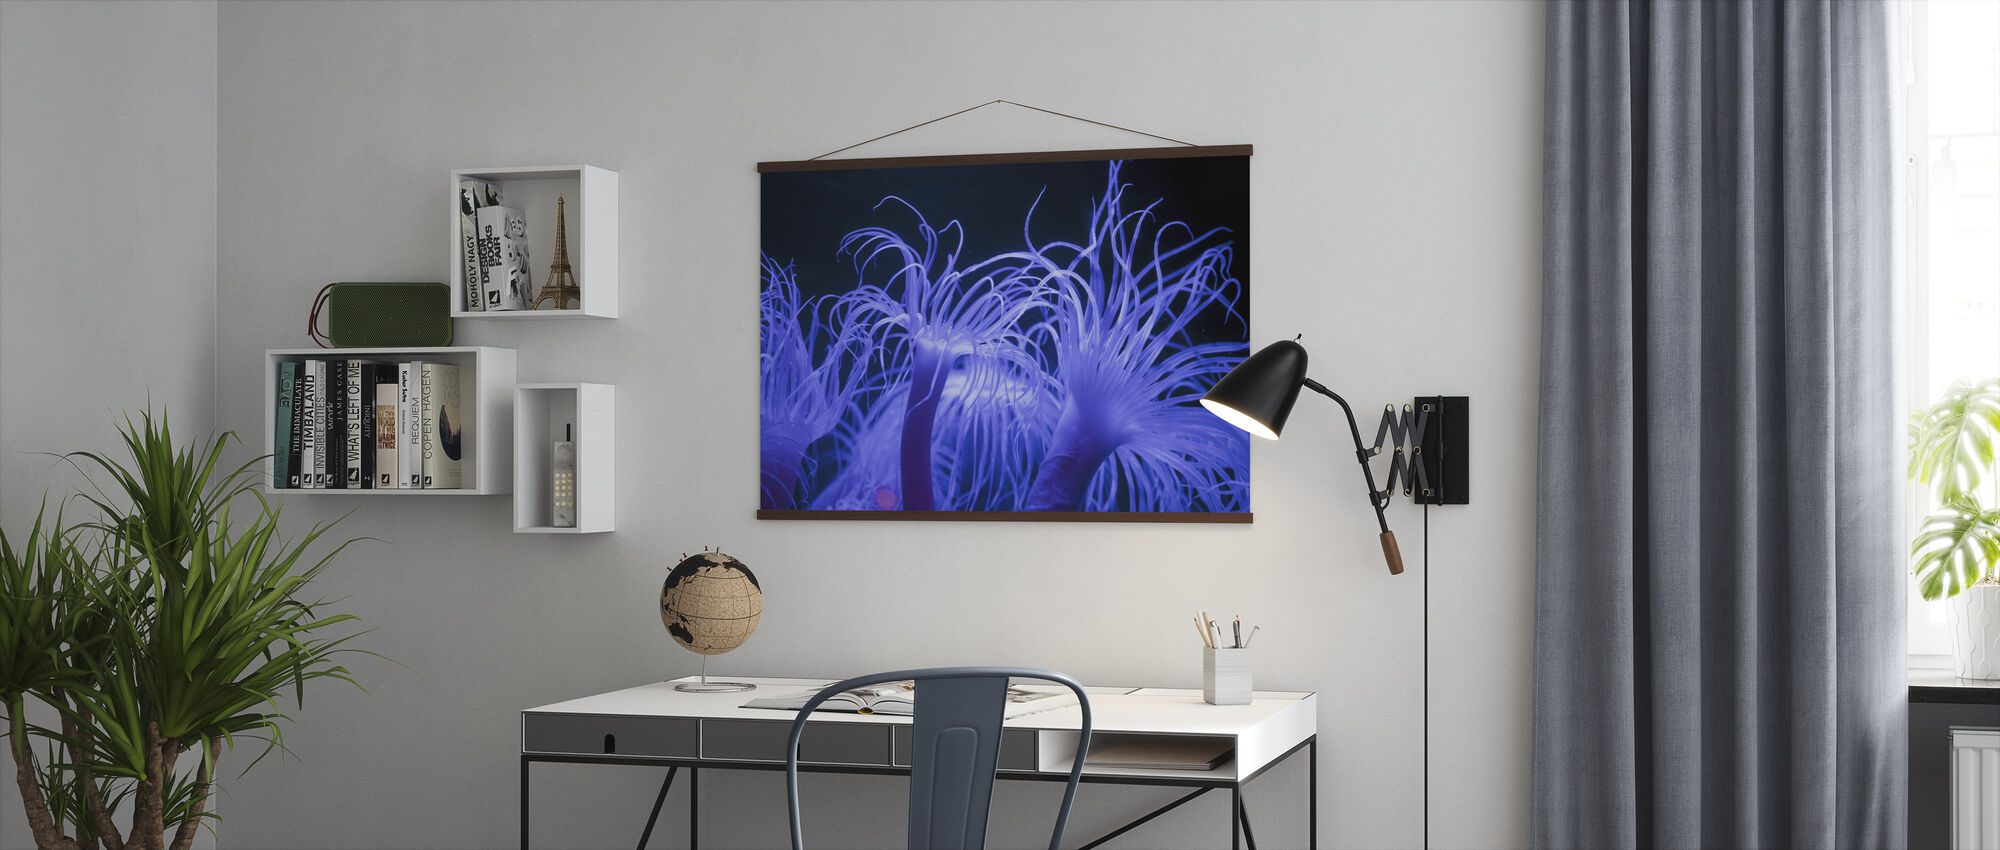 Sea anemone - Poster - Office